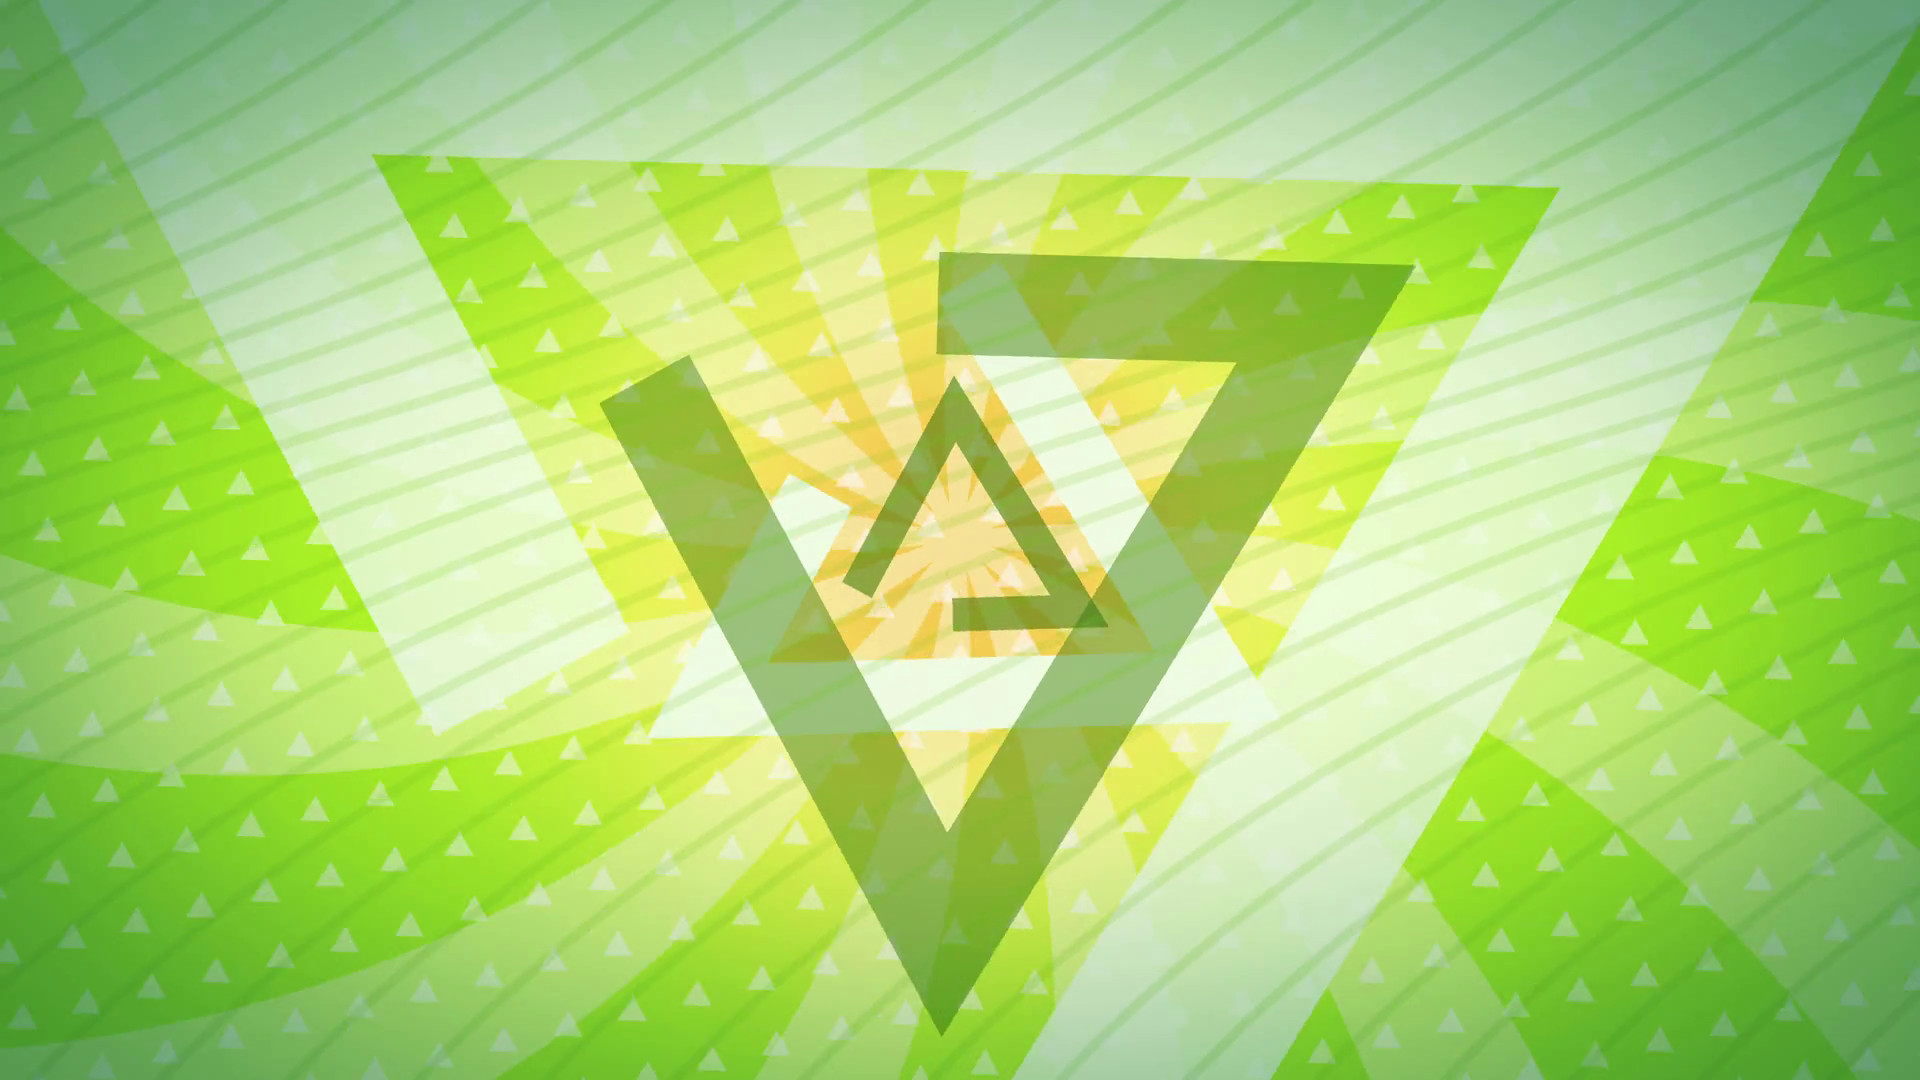 Subscription Library green triangles Abstract Background Animation loop for  your logo or text. Technology Background. Futuristic